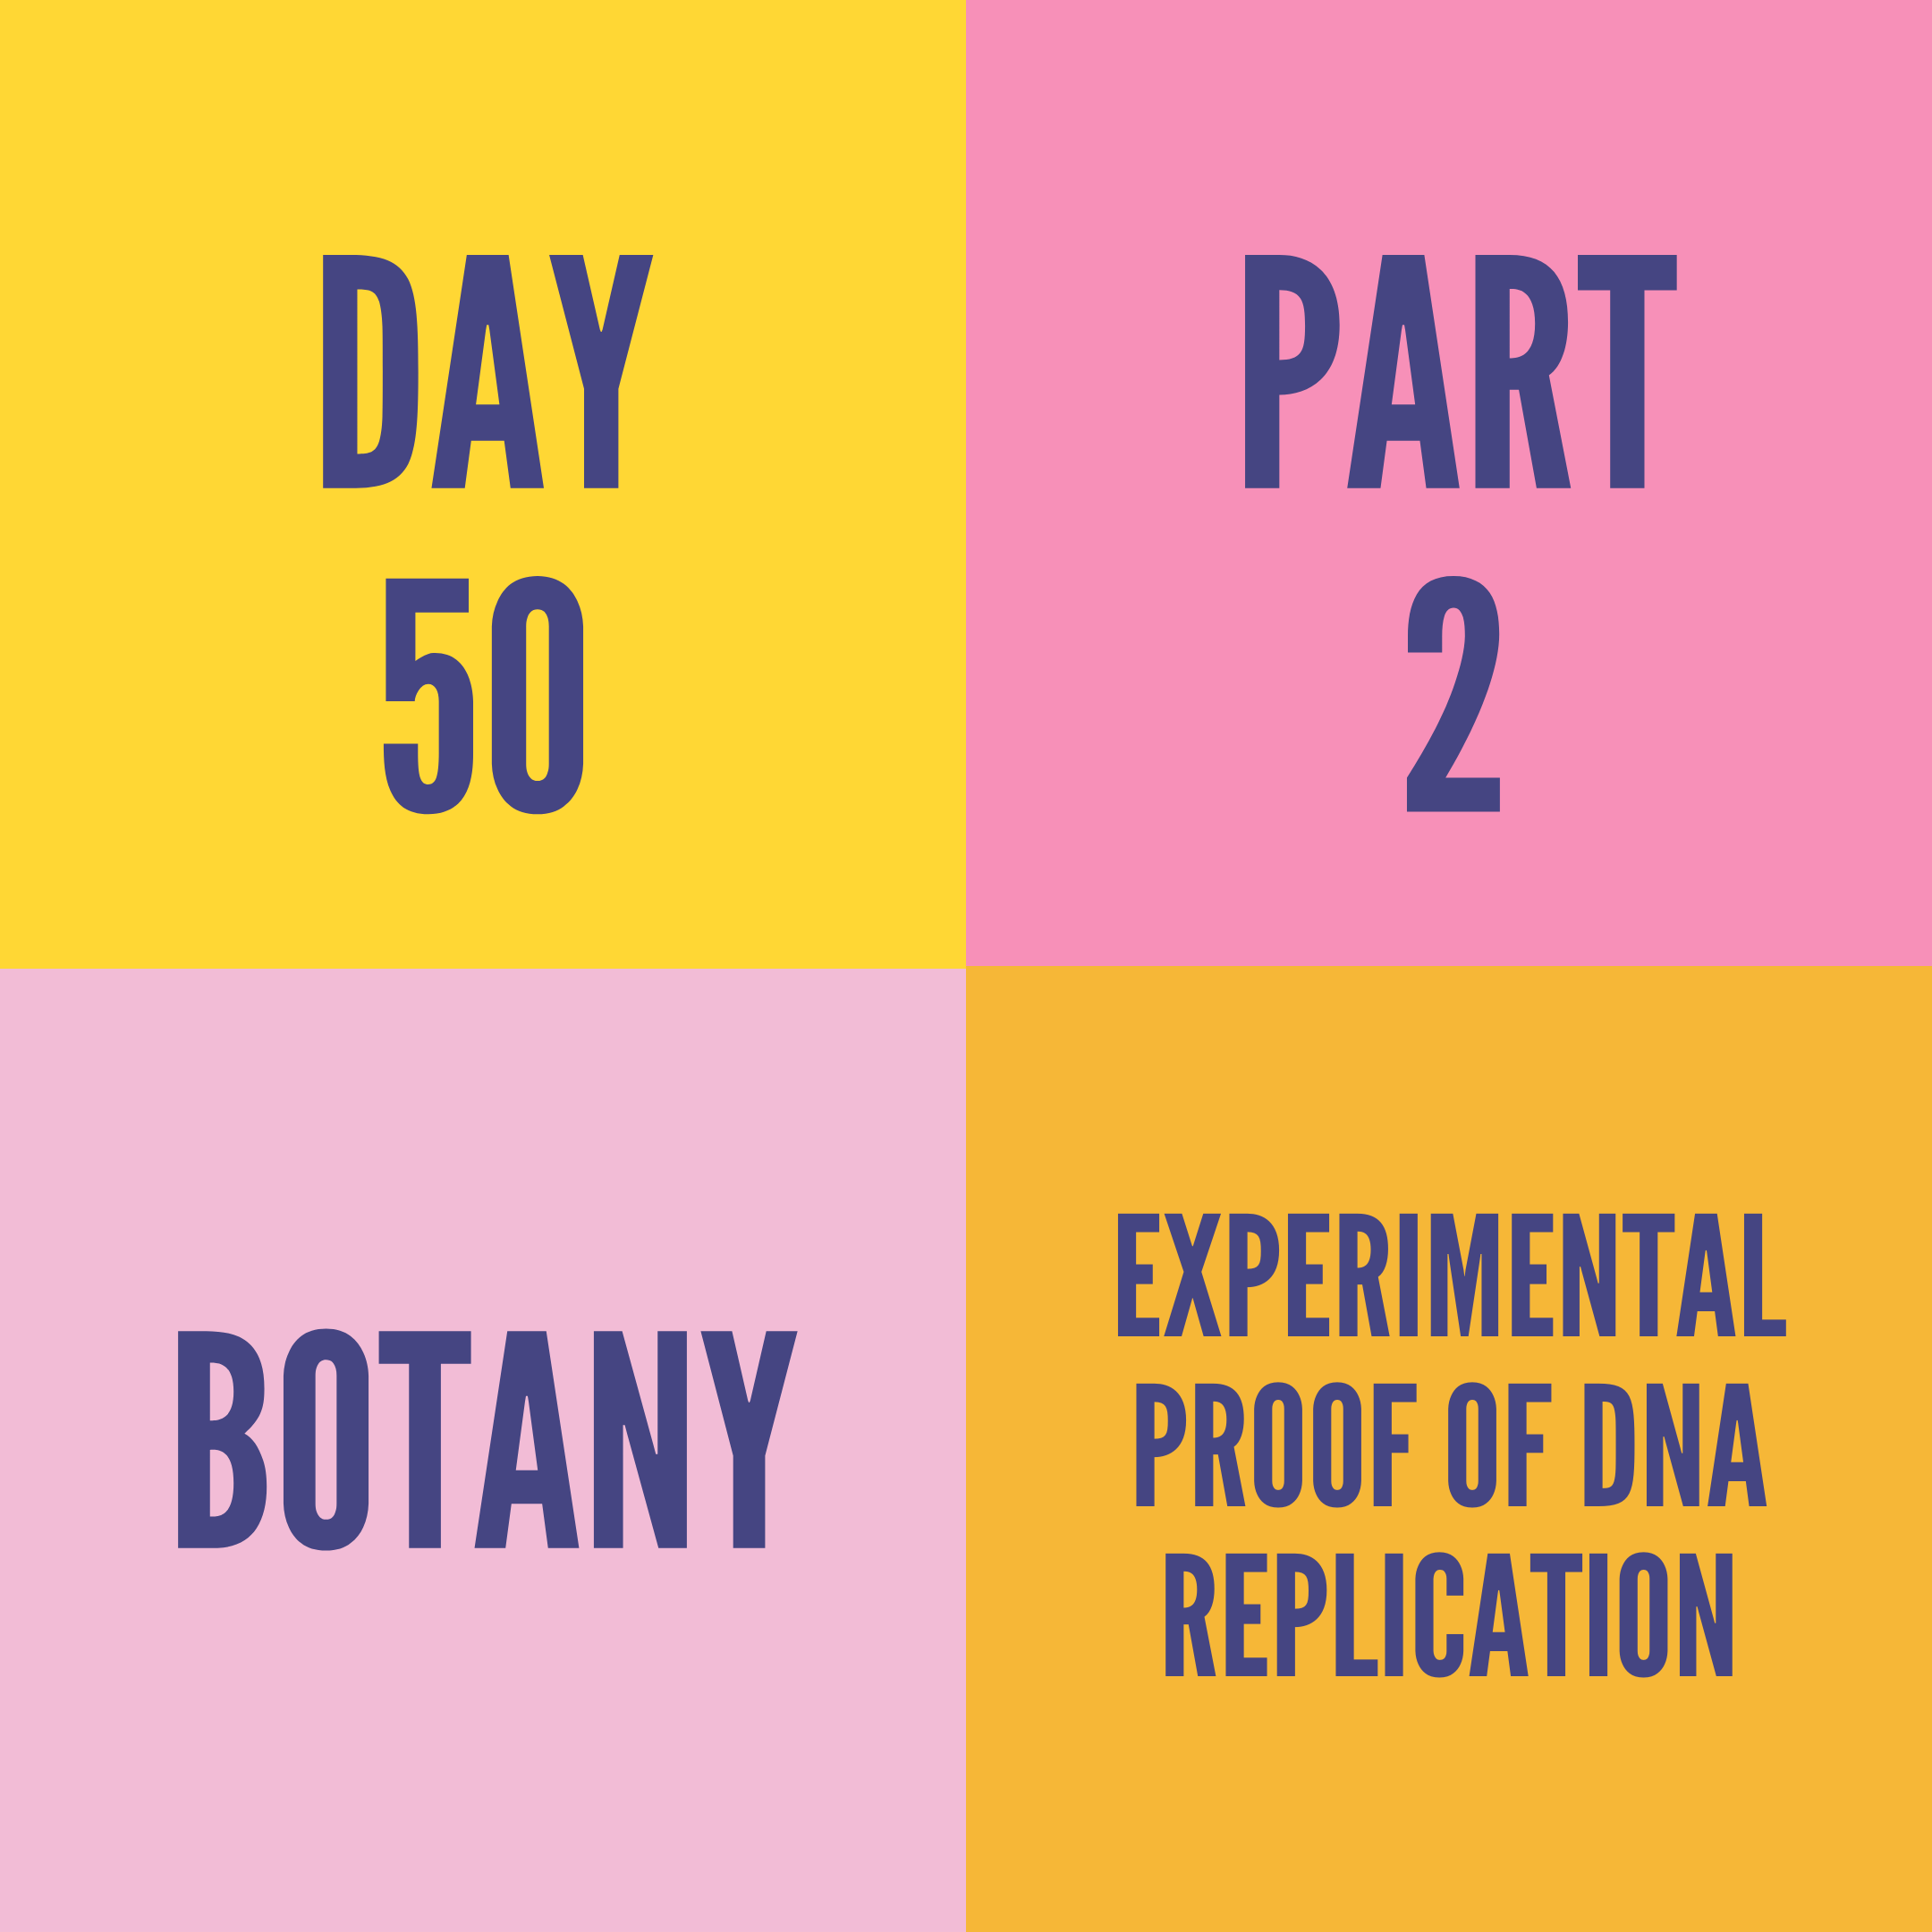 DAY-50 PART-2 EXPERIMENTAL PROOF OF DNA REPLICATION